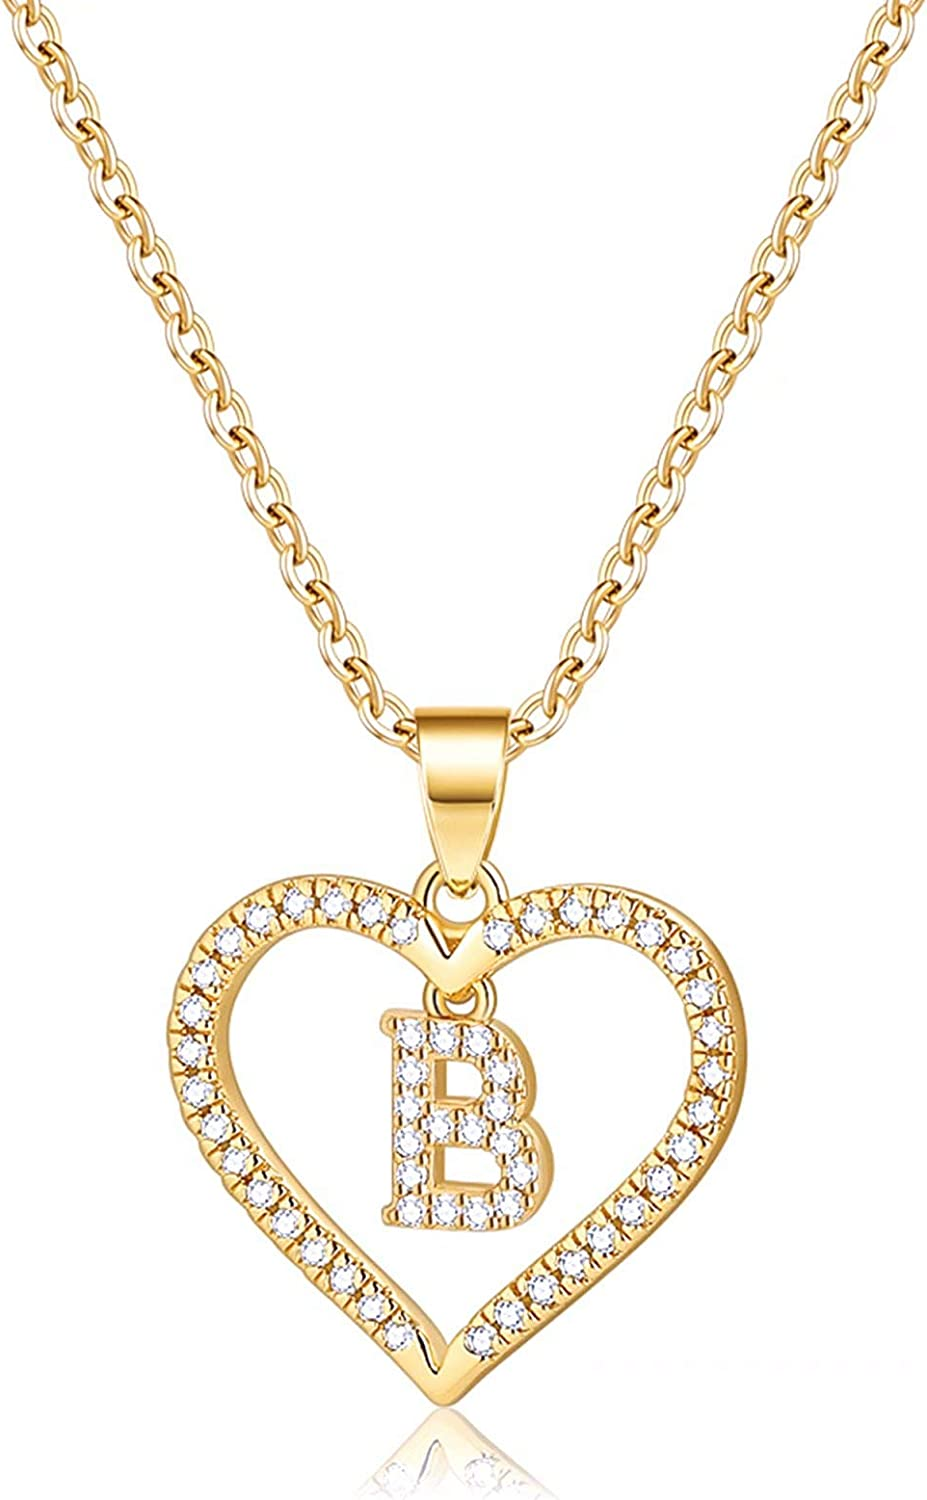 IEFSHINY Initials Letter Necklace for Women Girls, 14k Gold Filled Initial Letter Plated Charm Necklaces CZ Pendant Love Heart Alphabet Necklace for Women Teen Girls